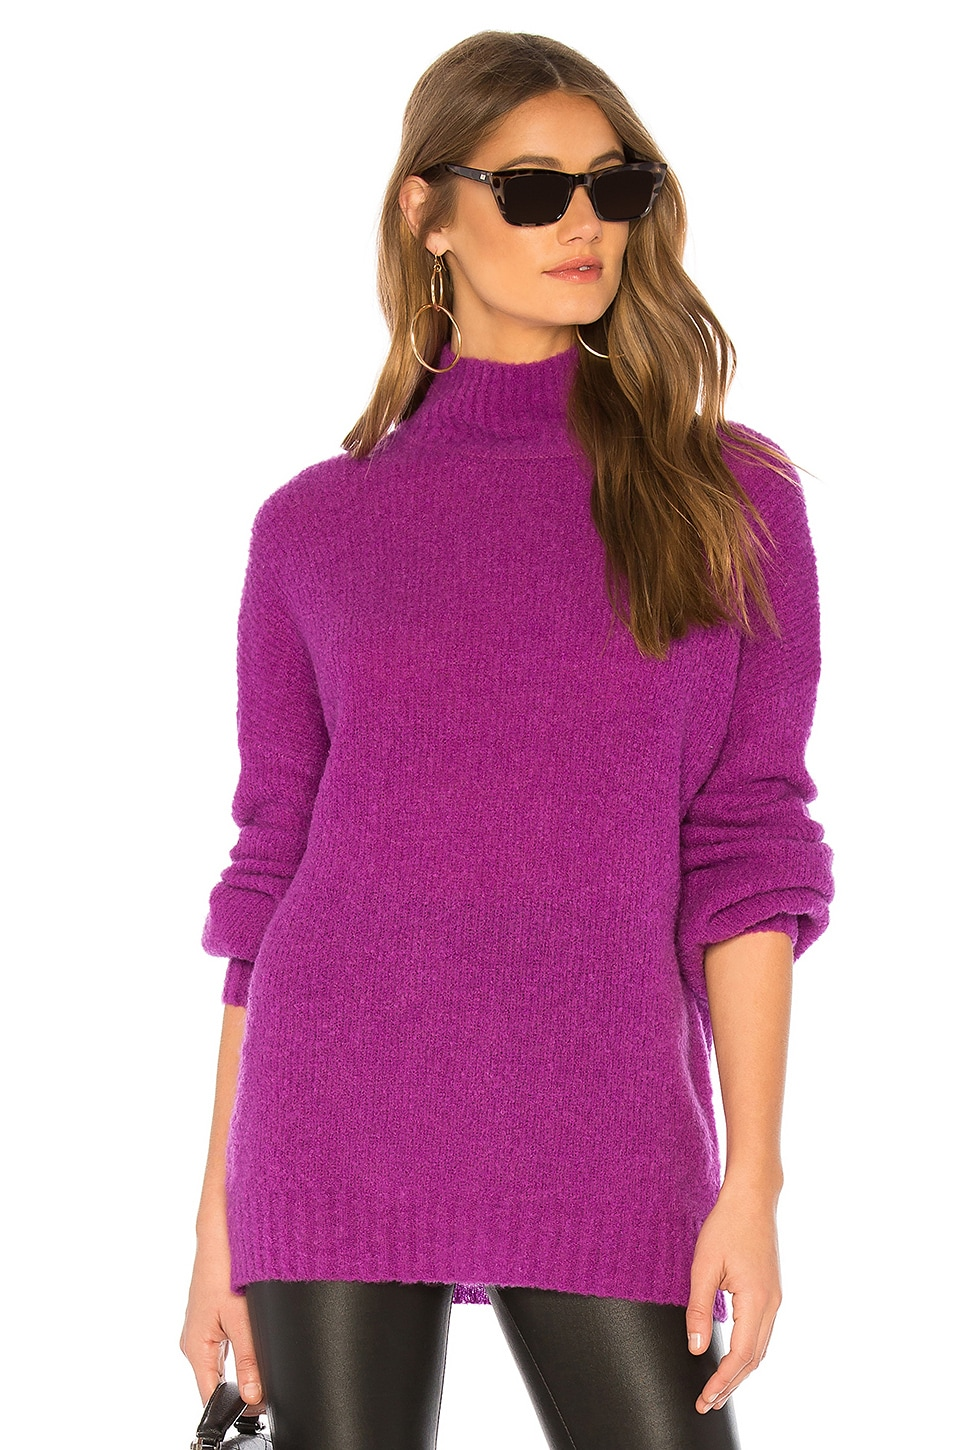 Lovers + Friends Independent Sweater in Magenta